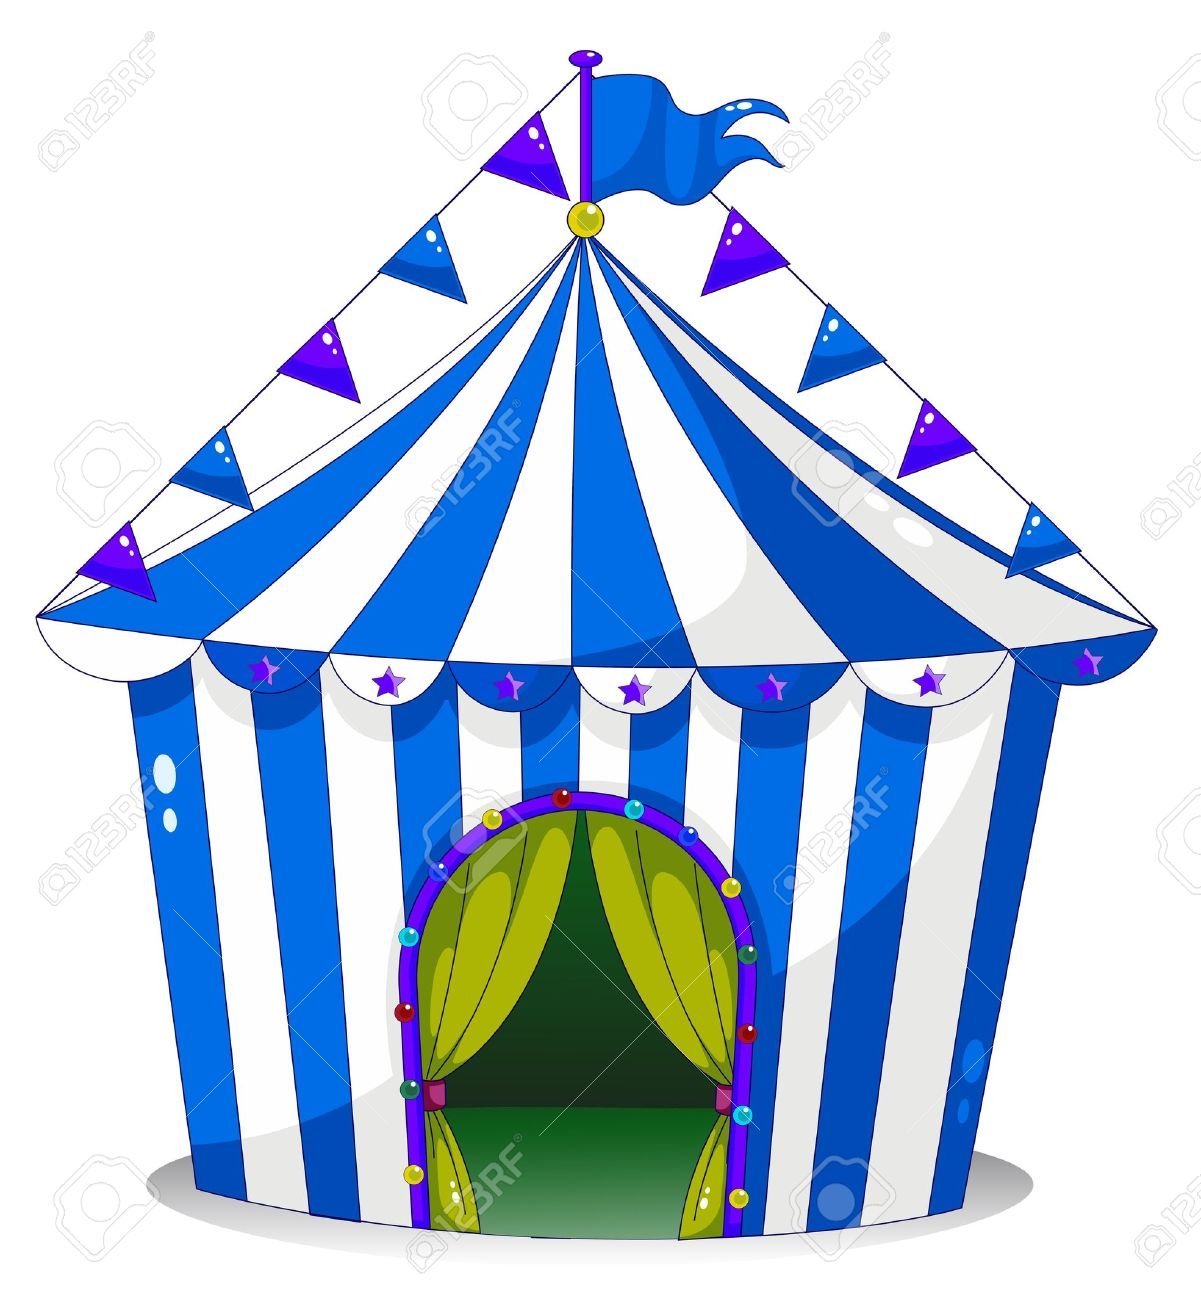 Illustration of a circus tent on a white background Stock Vector - 18607623